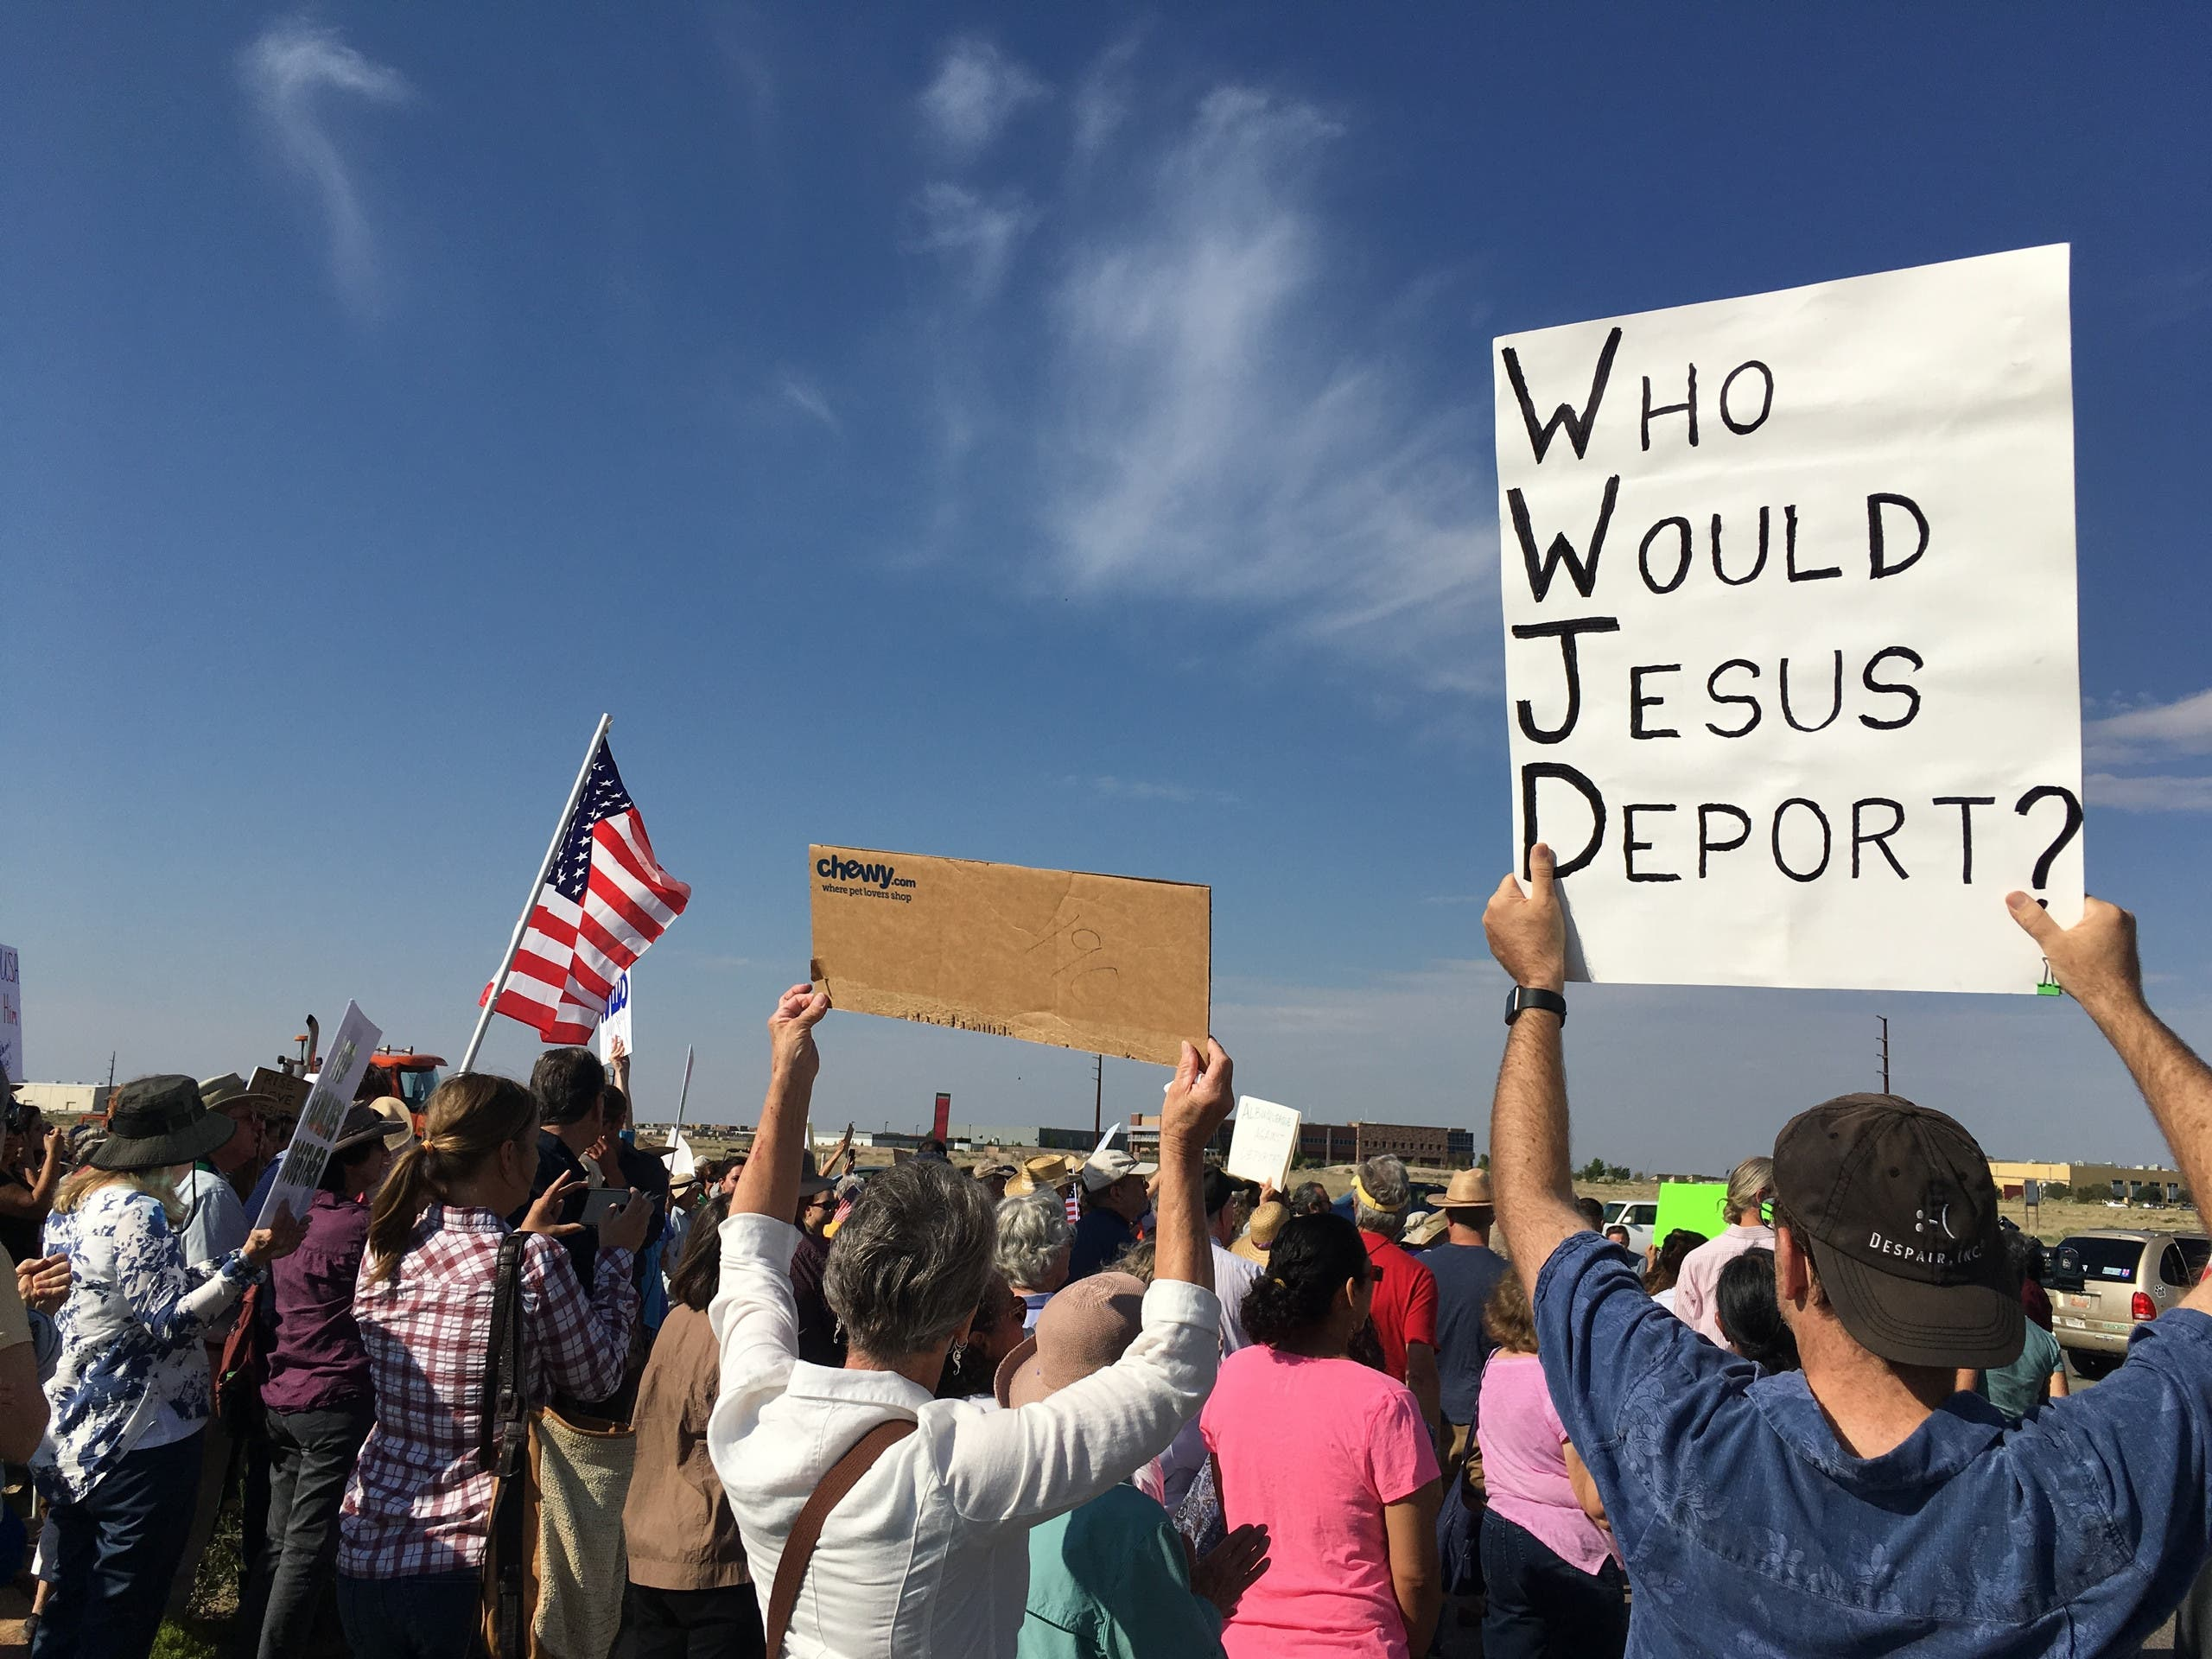 Around 300 supporters demonstrated outside the Immigration and Customs Enforcement offices in Albuquerque, N.M., in support of Iraqi refugee Kadhim Al-bumohammed on Monday, June 26, 2017.AP